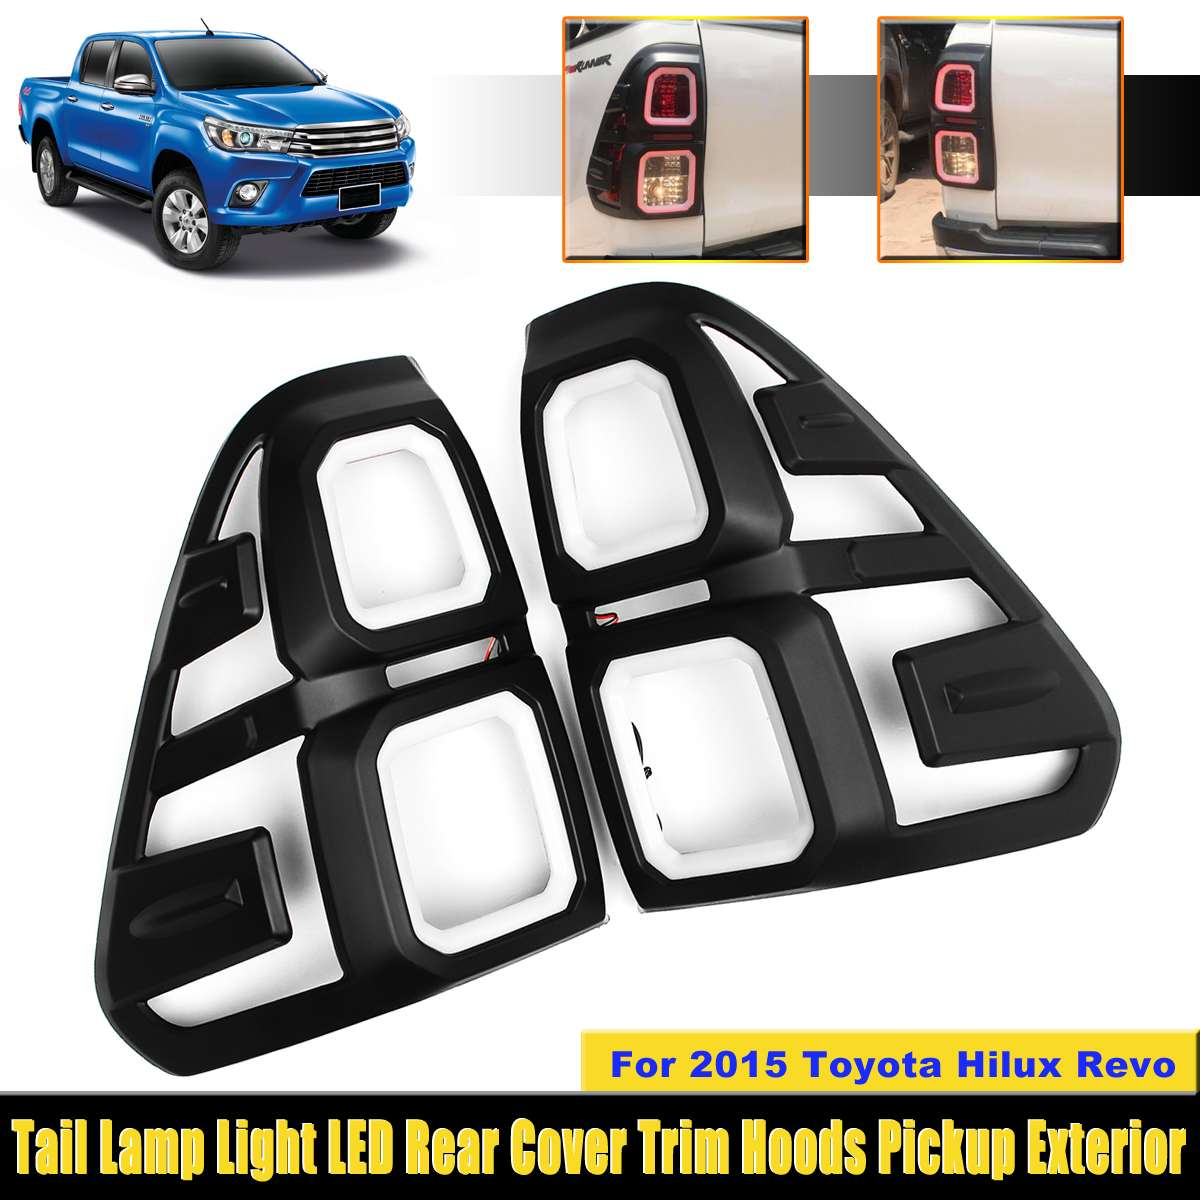 LED Rear Tail Lamp Lights Cover For Toyota Hilux Revo 2015 LED Lamp Hoods LED Tail Lights Trim Hoods Pickup Auto Accessories diff drop kit for hilux